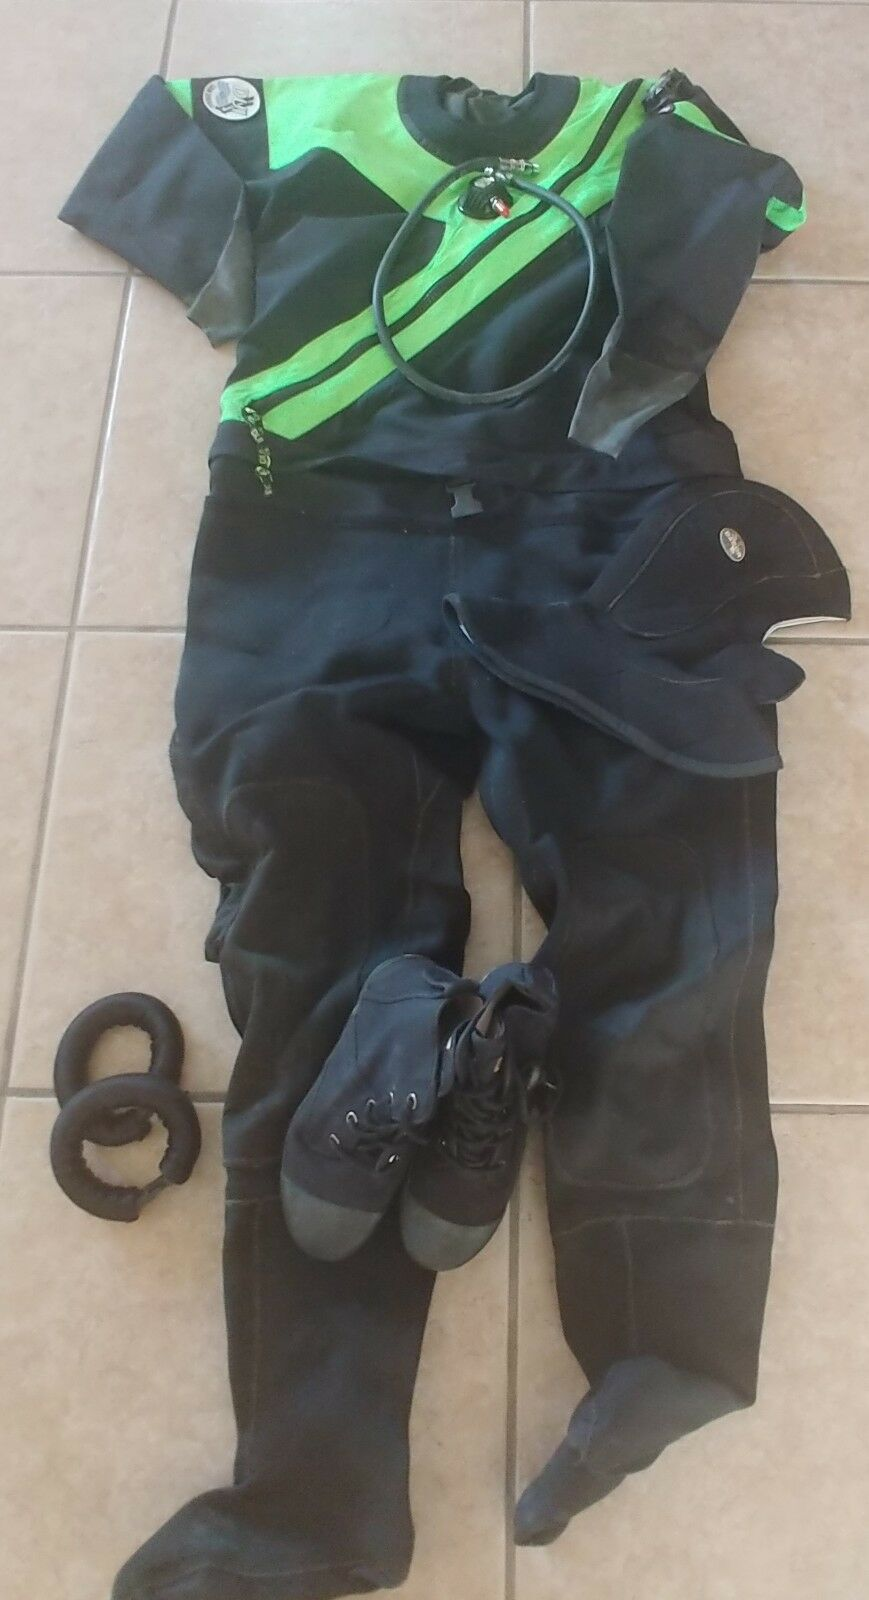 DUI FLX50 50  Dry Suit - Medium with  Boots, Hood, Ankle Weights, Hose & Bag